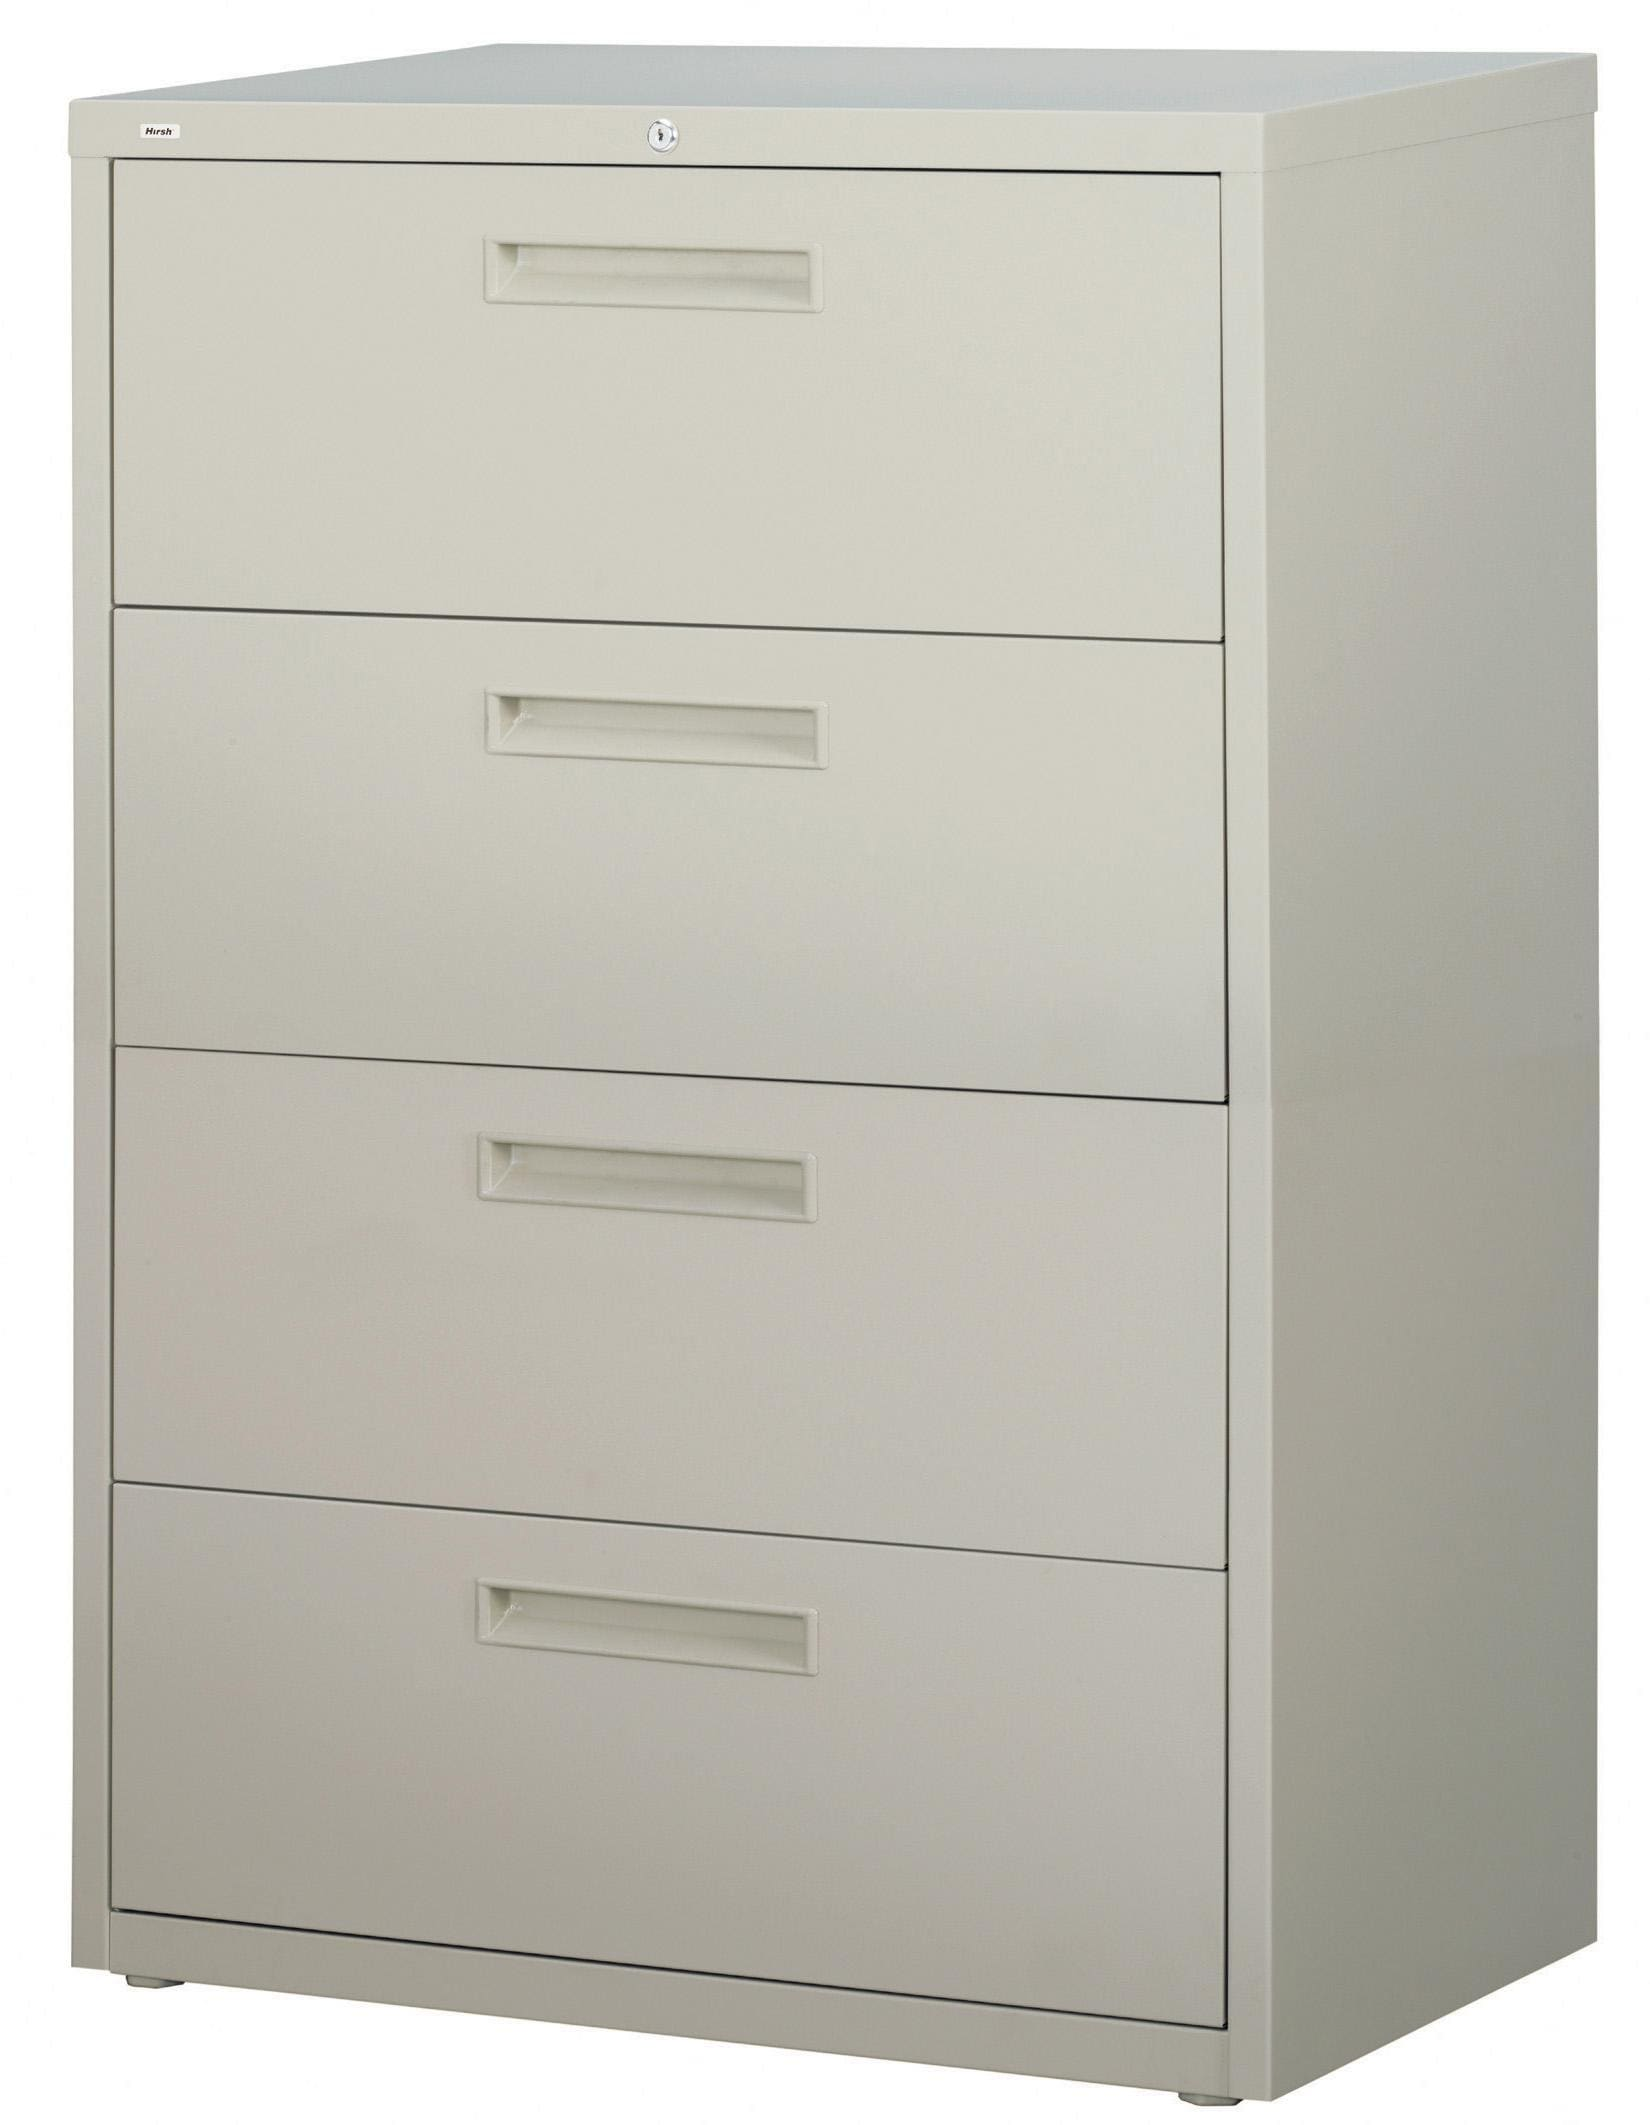 File Cabinet Hirsh Hl5000 Series 36 Inch Wide 4 Drawer Commercial Lateral File